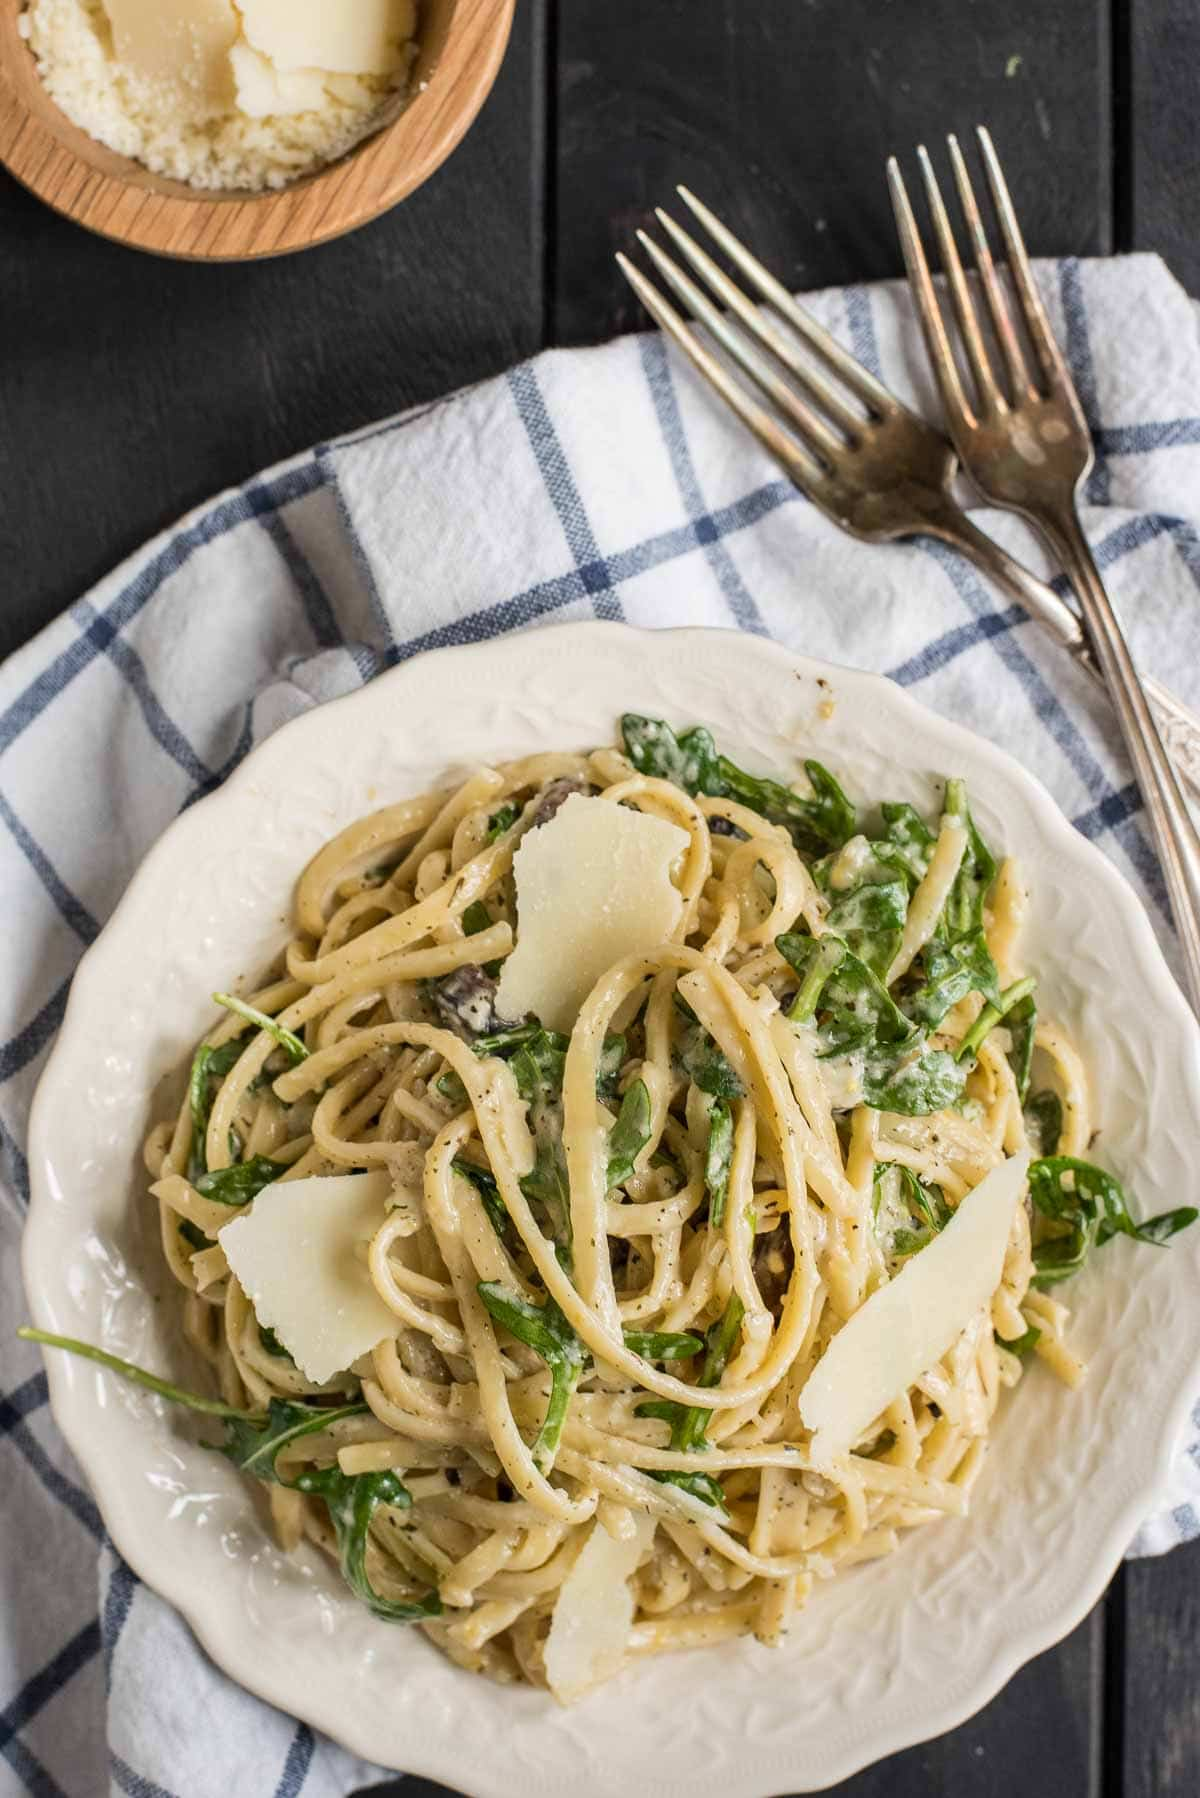 This easy Parmesan Lemon Linguine with Arugula is the perfect quick weeknight meal.